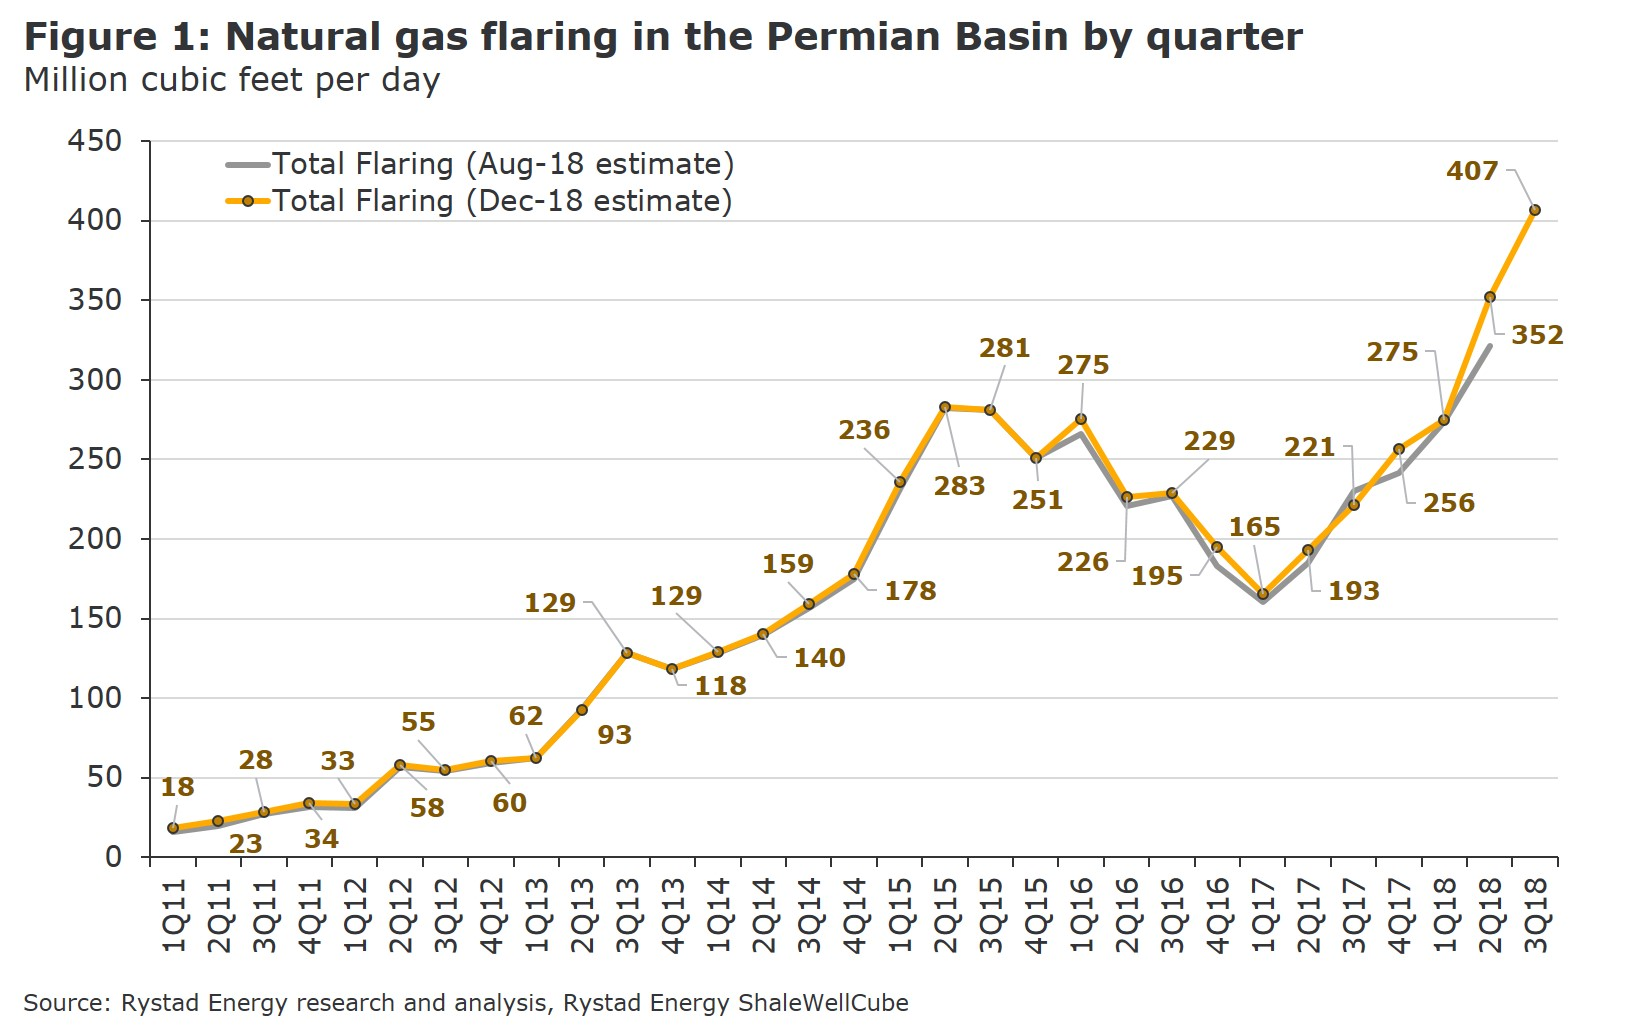 A graph showing the natural gas flaring in the Permian Basin by quarter in Million cubic feet per day from 2011 to 2018, Source: Rystad Energy research and analysis, ShaleWellCube